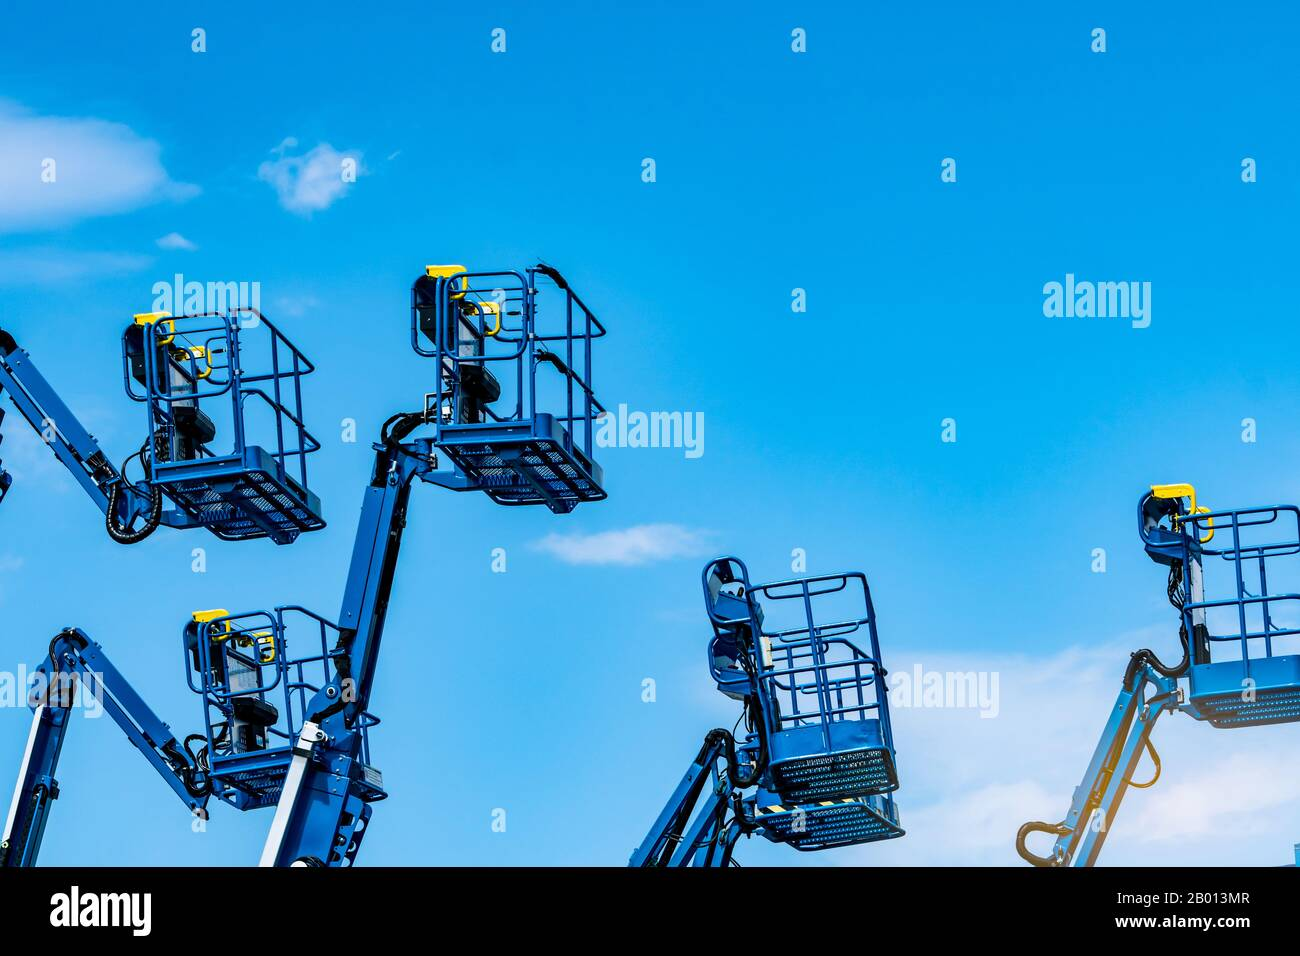 Articulated boom lift. Aerial platform lift. Telescopic boom lift against blue sky. Mobile construction crane for rent and sale. Maintenance Stock Photo